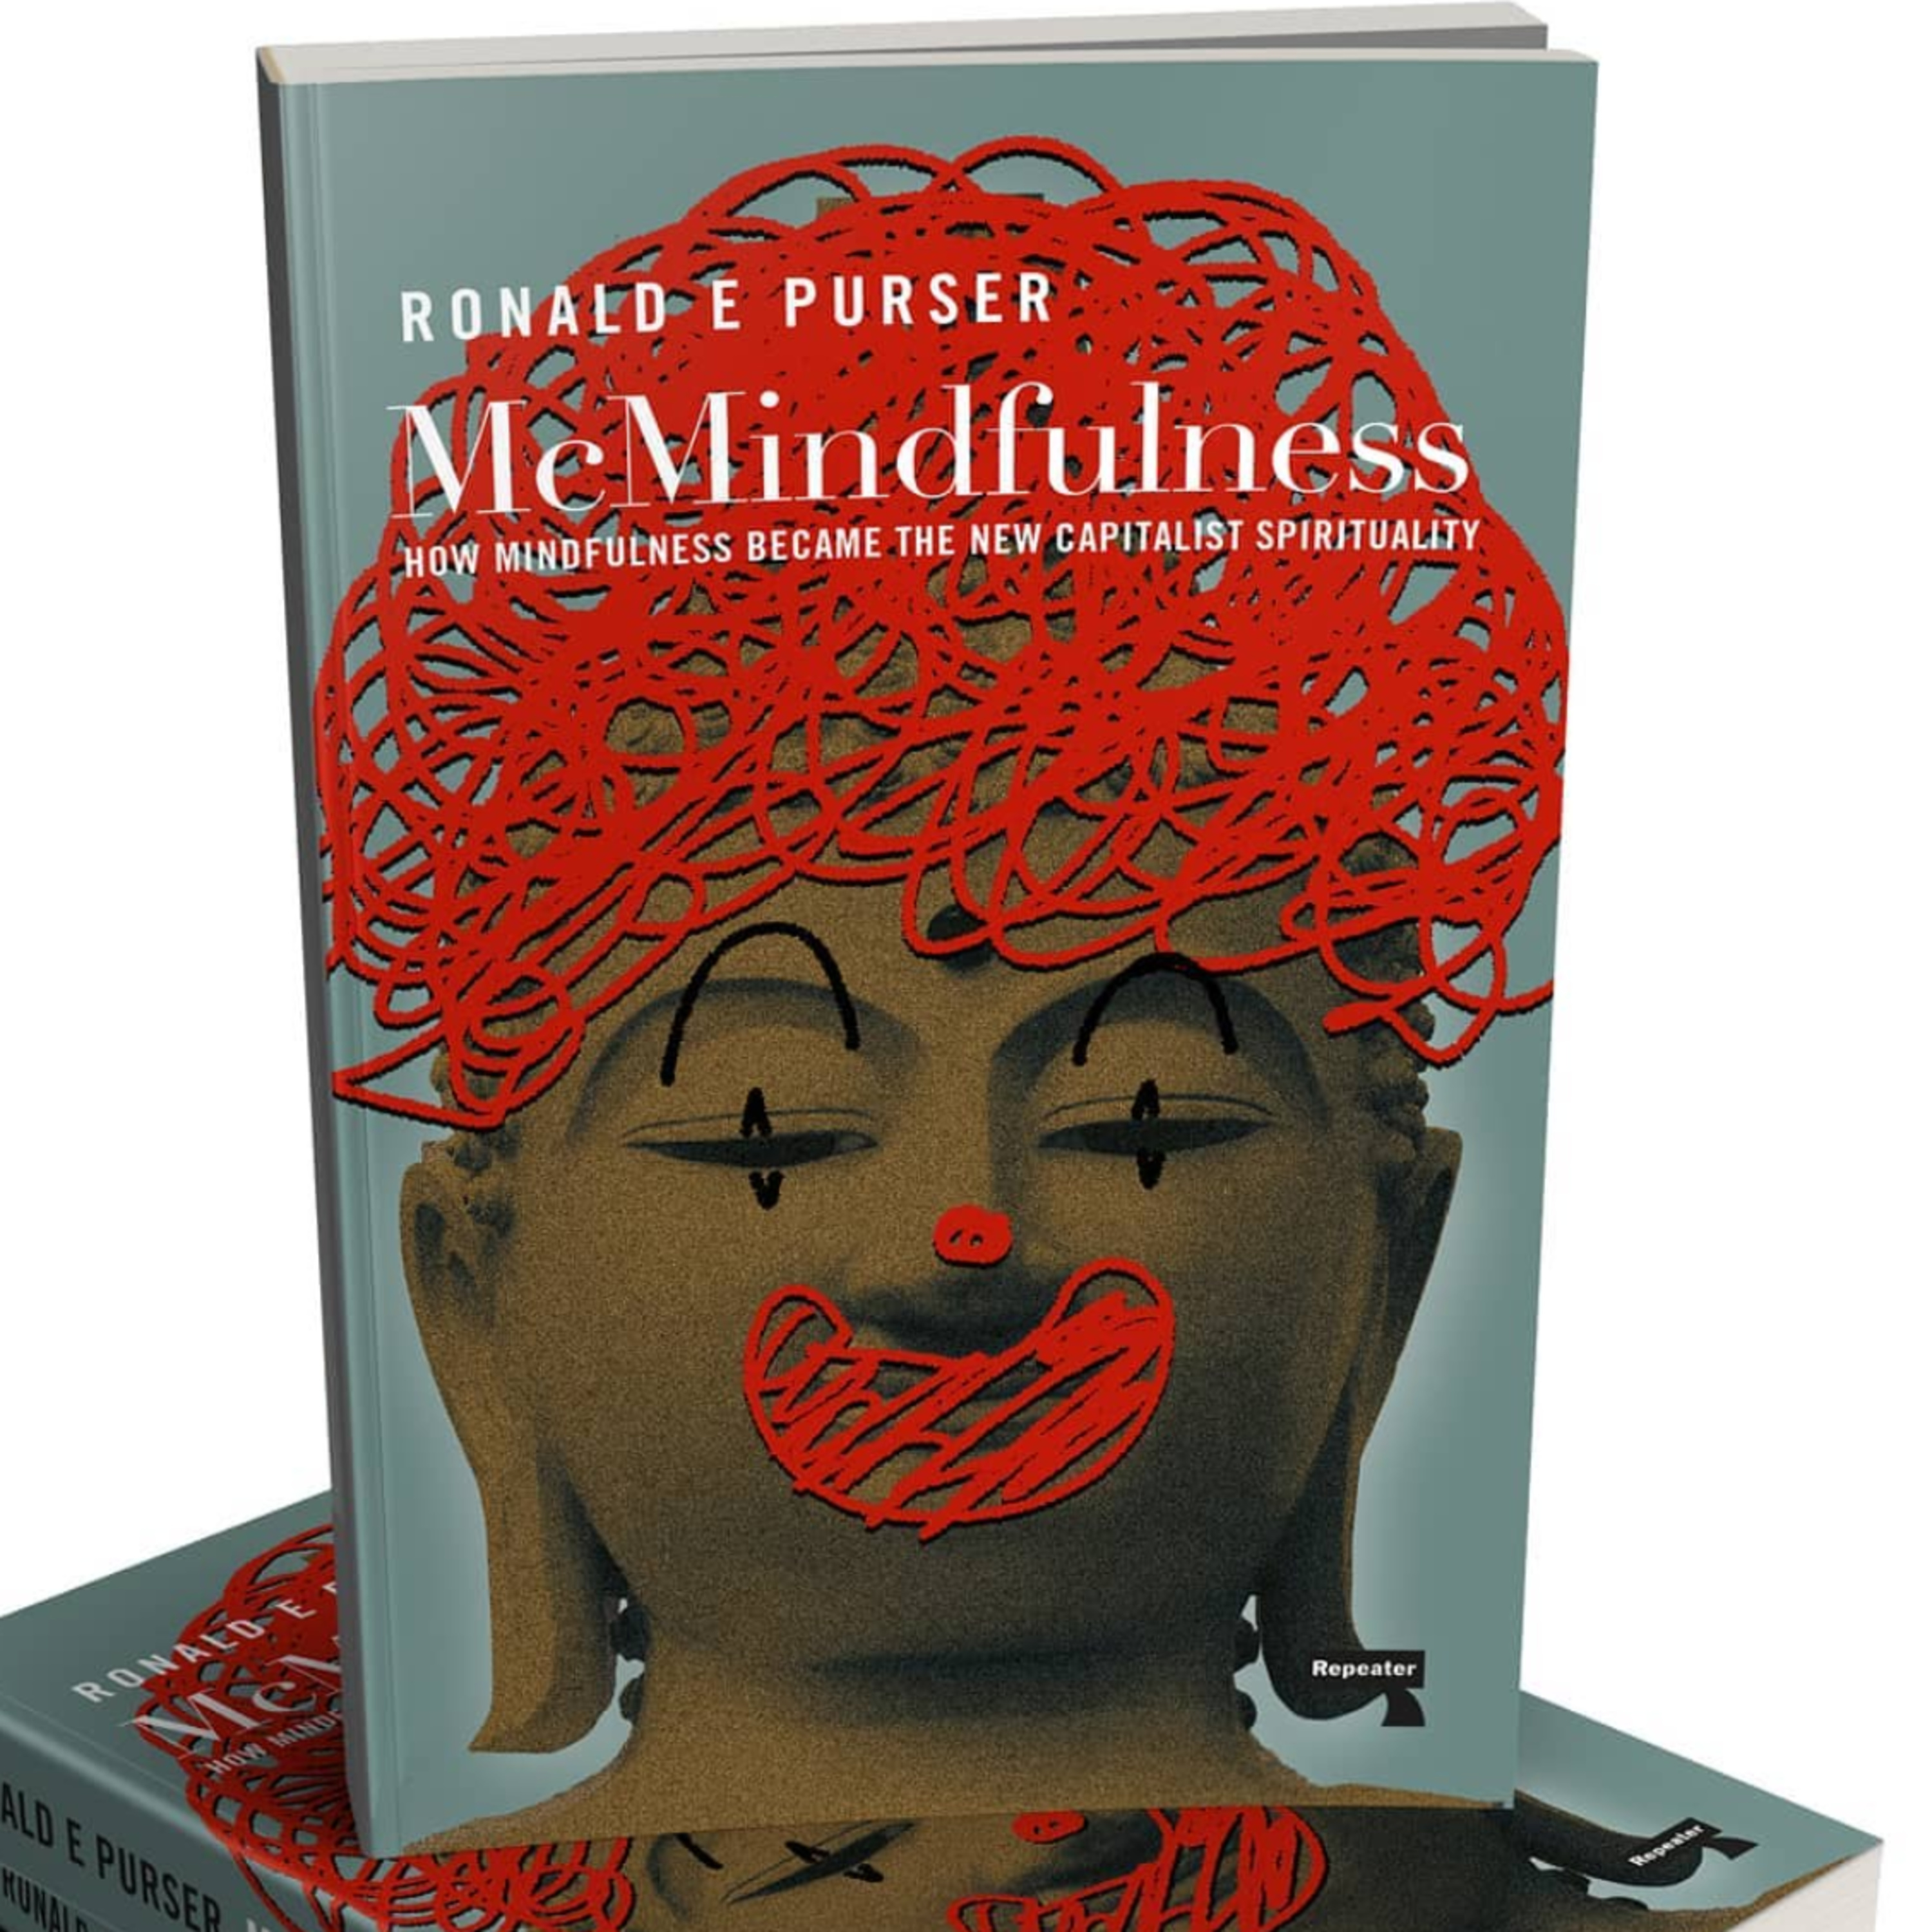 34 - McMindfulness: The New Capitalist Spirituality with Ron Purser